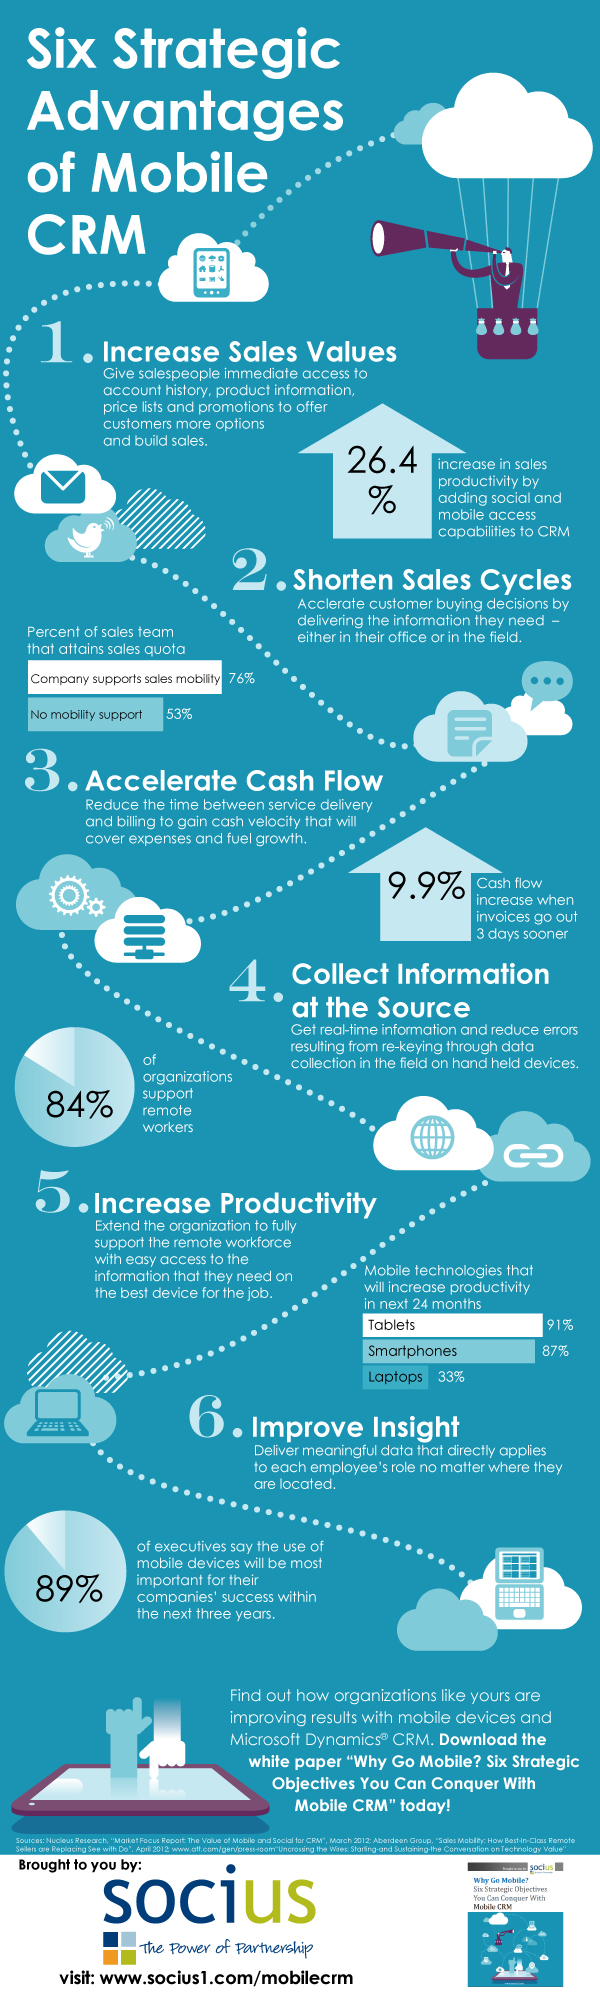 CRM-Mobile-Infographic